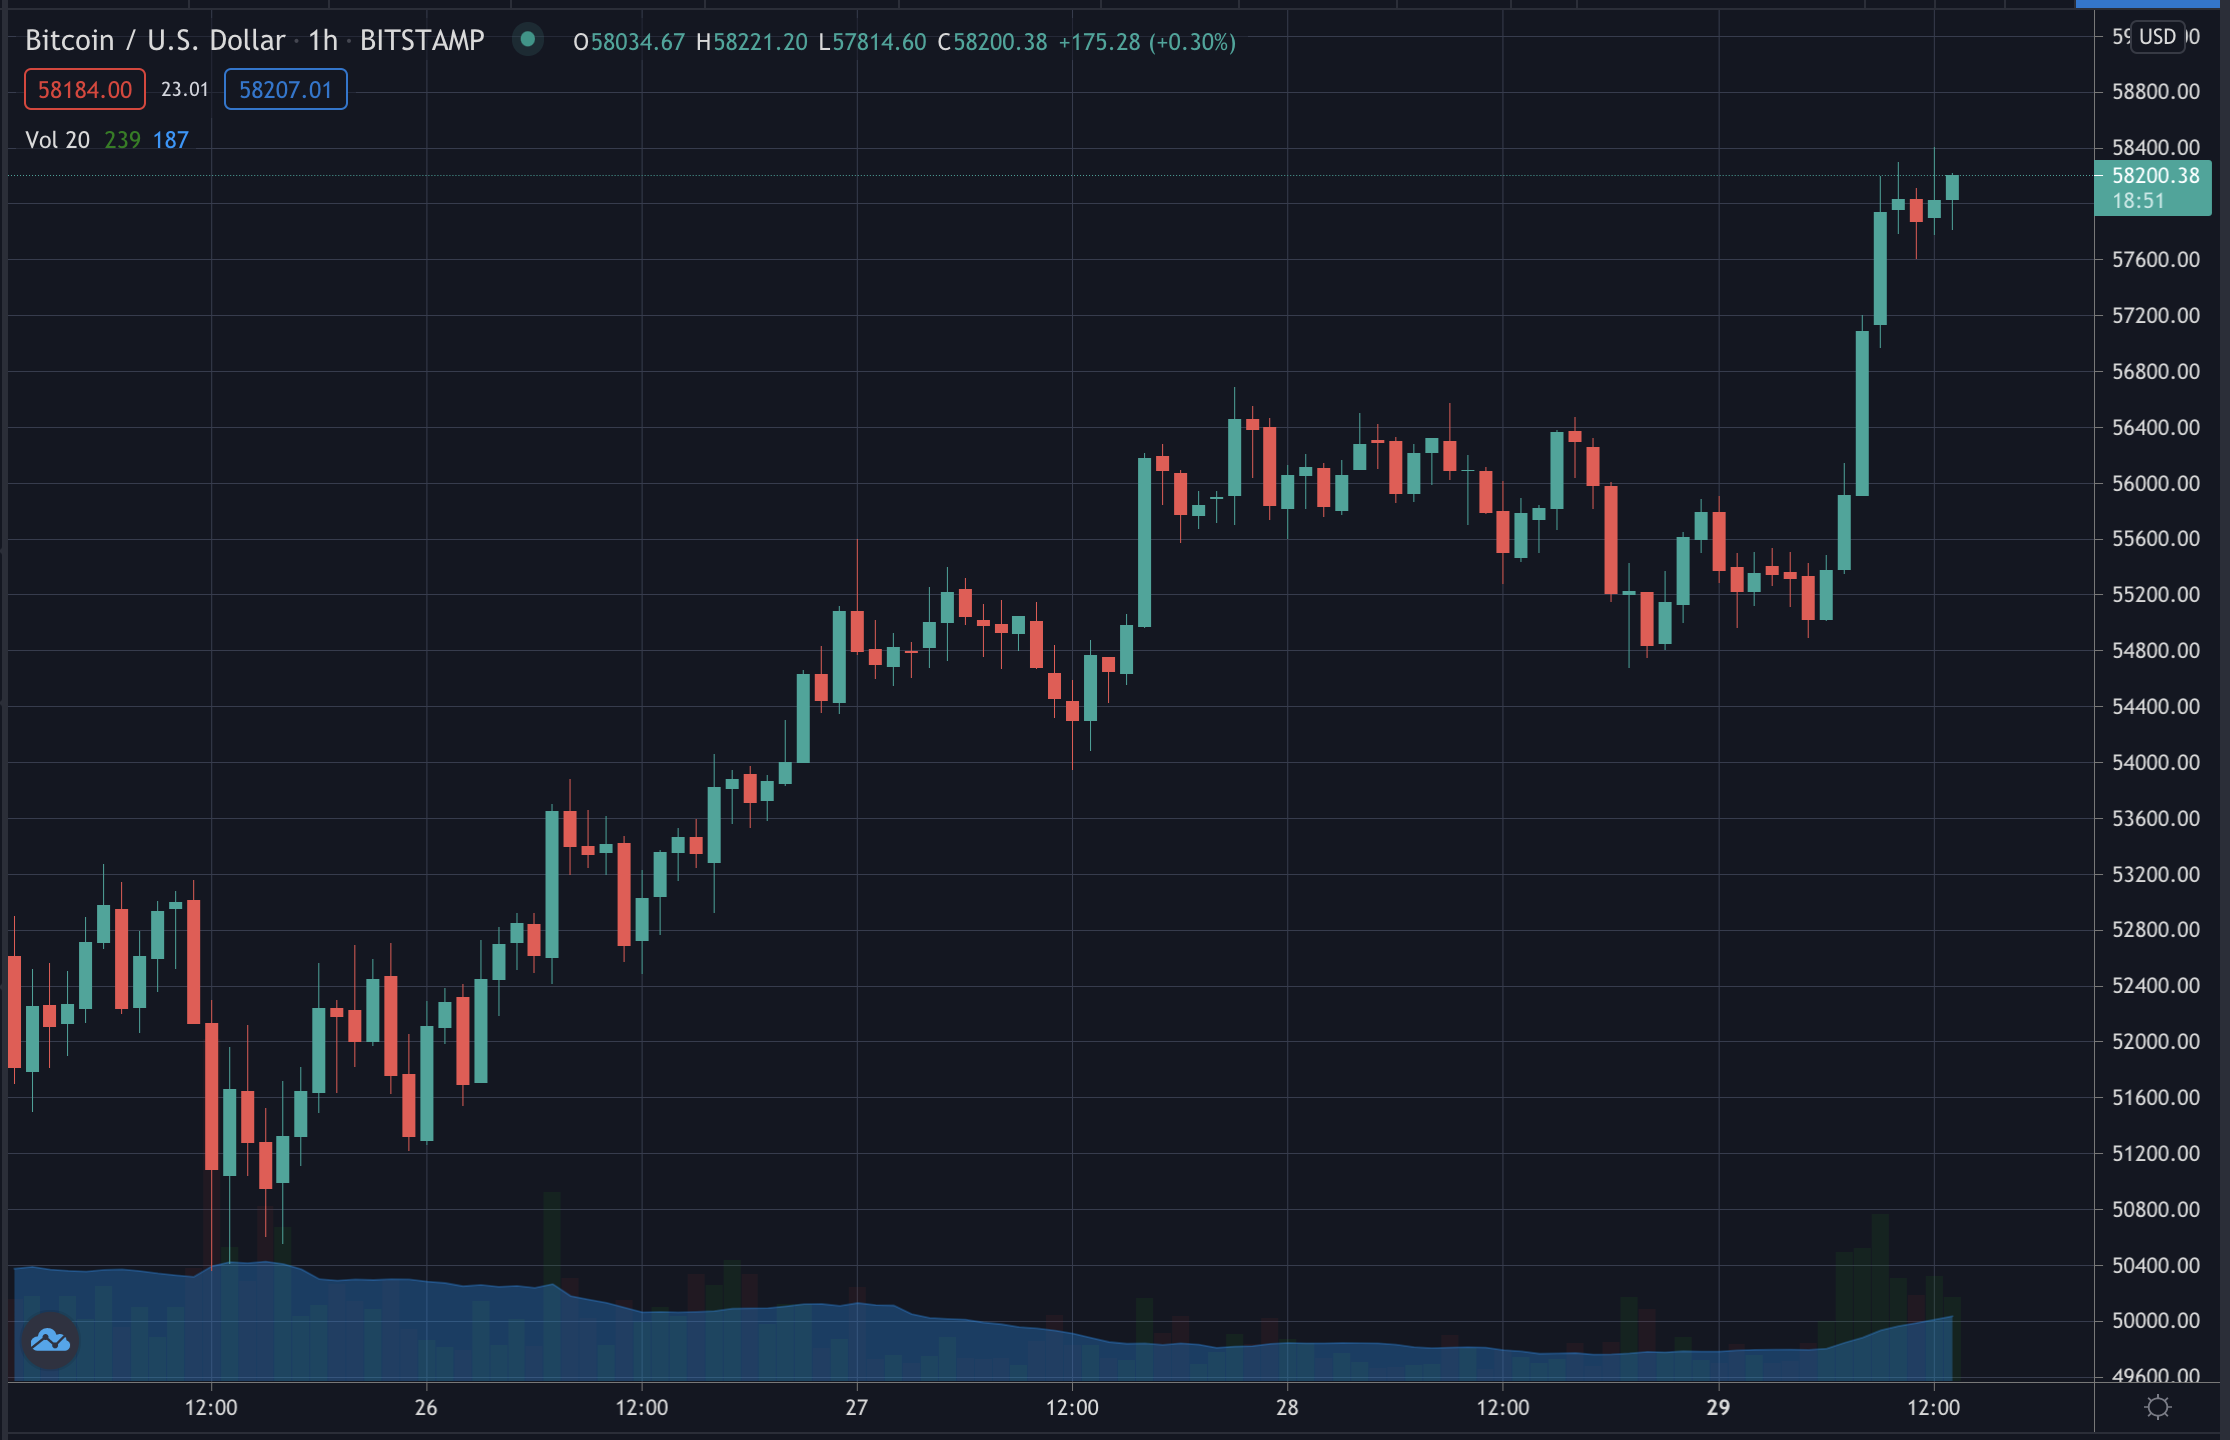 Bitcoin price, March 2021